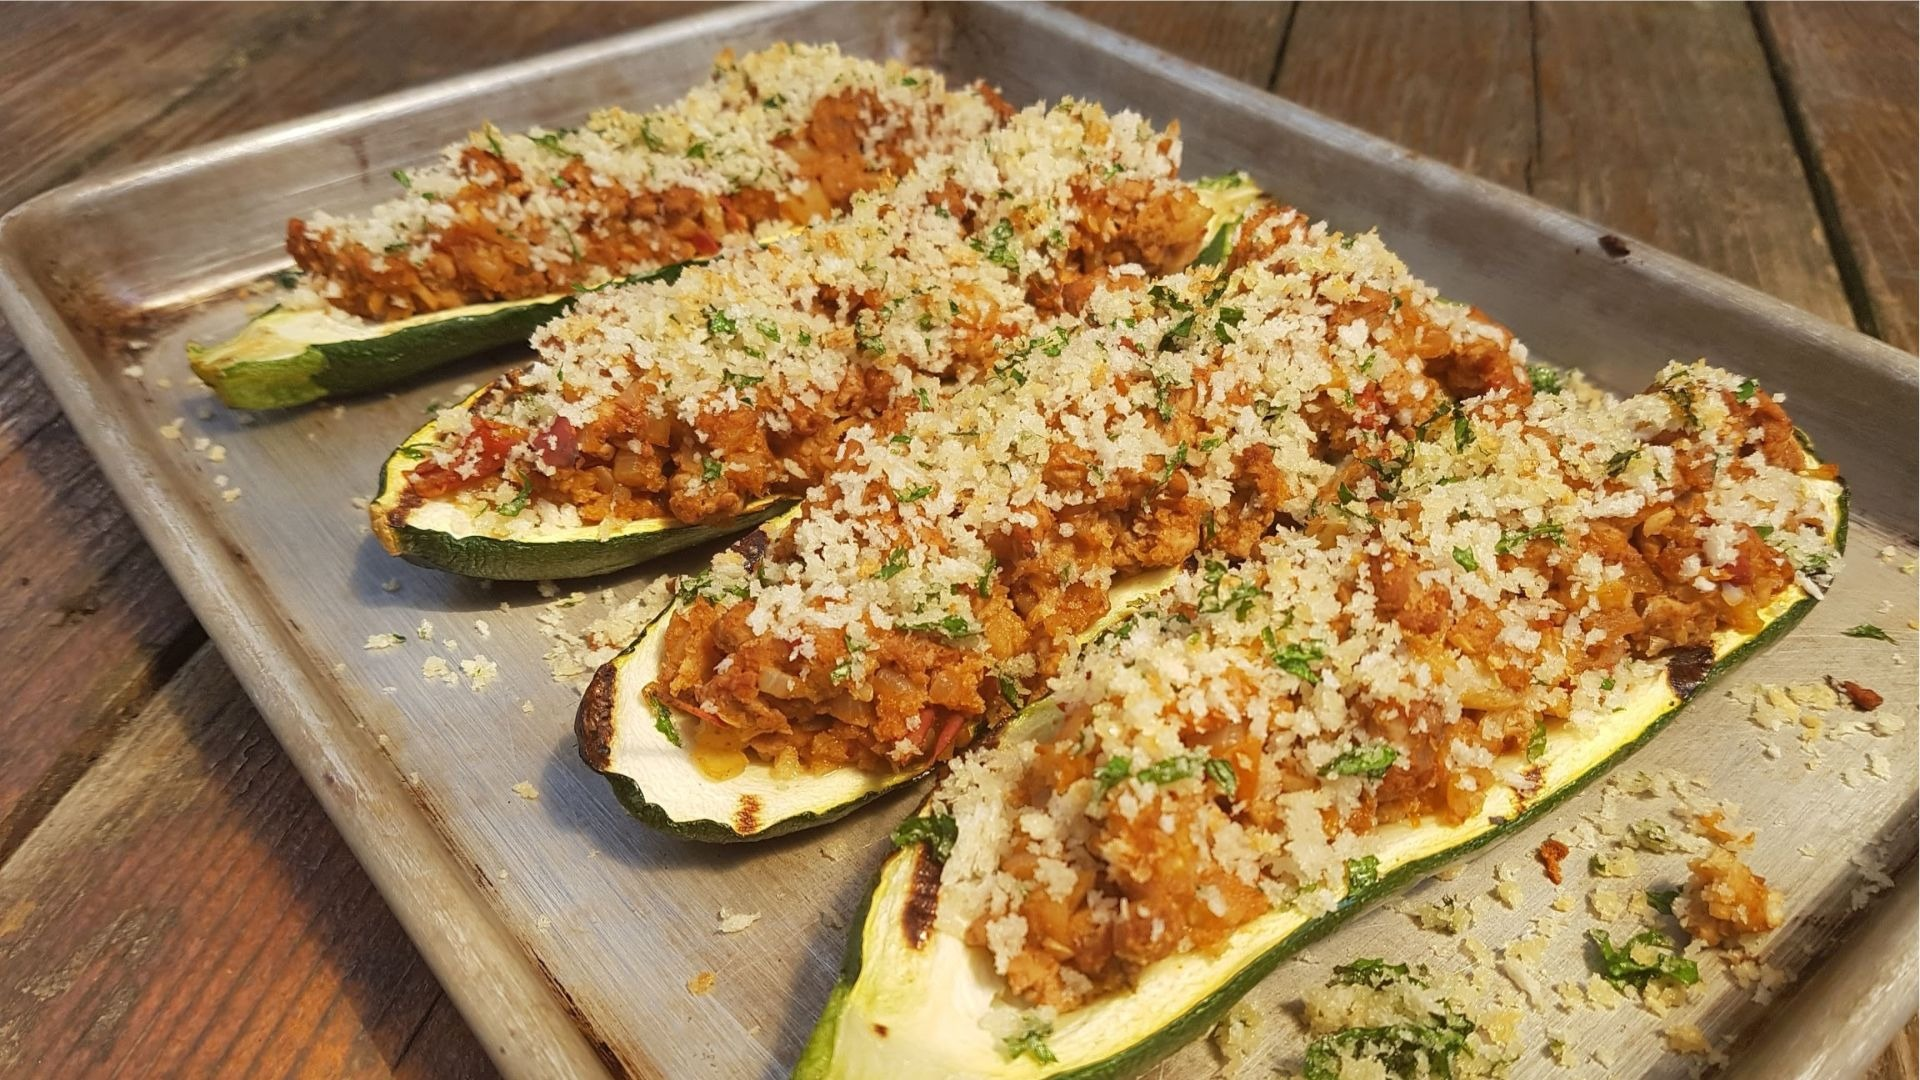 Zucchini stuffed with ground turkey and panko crumbs